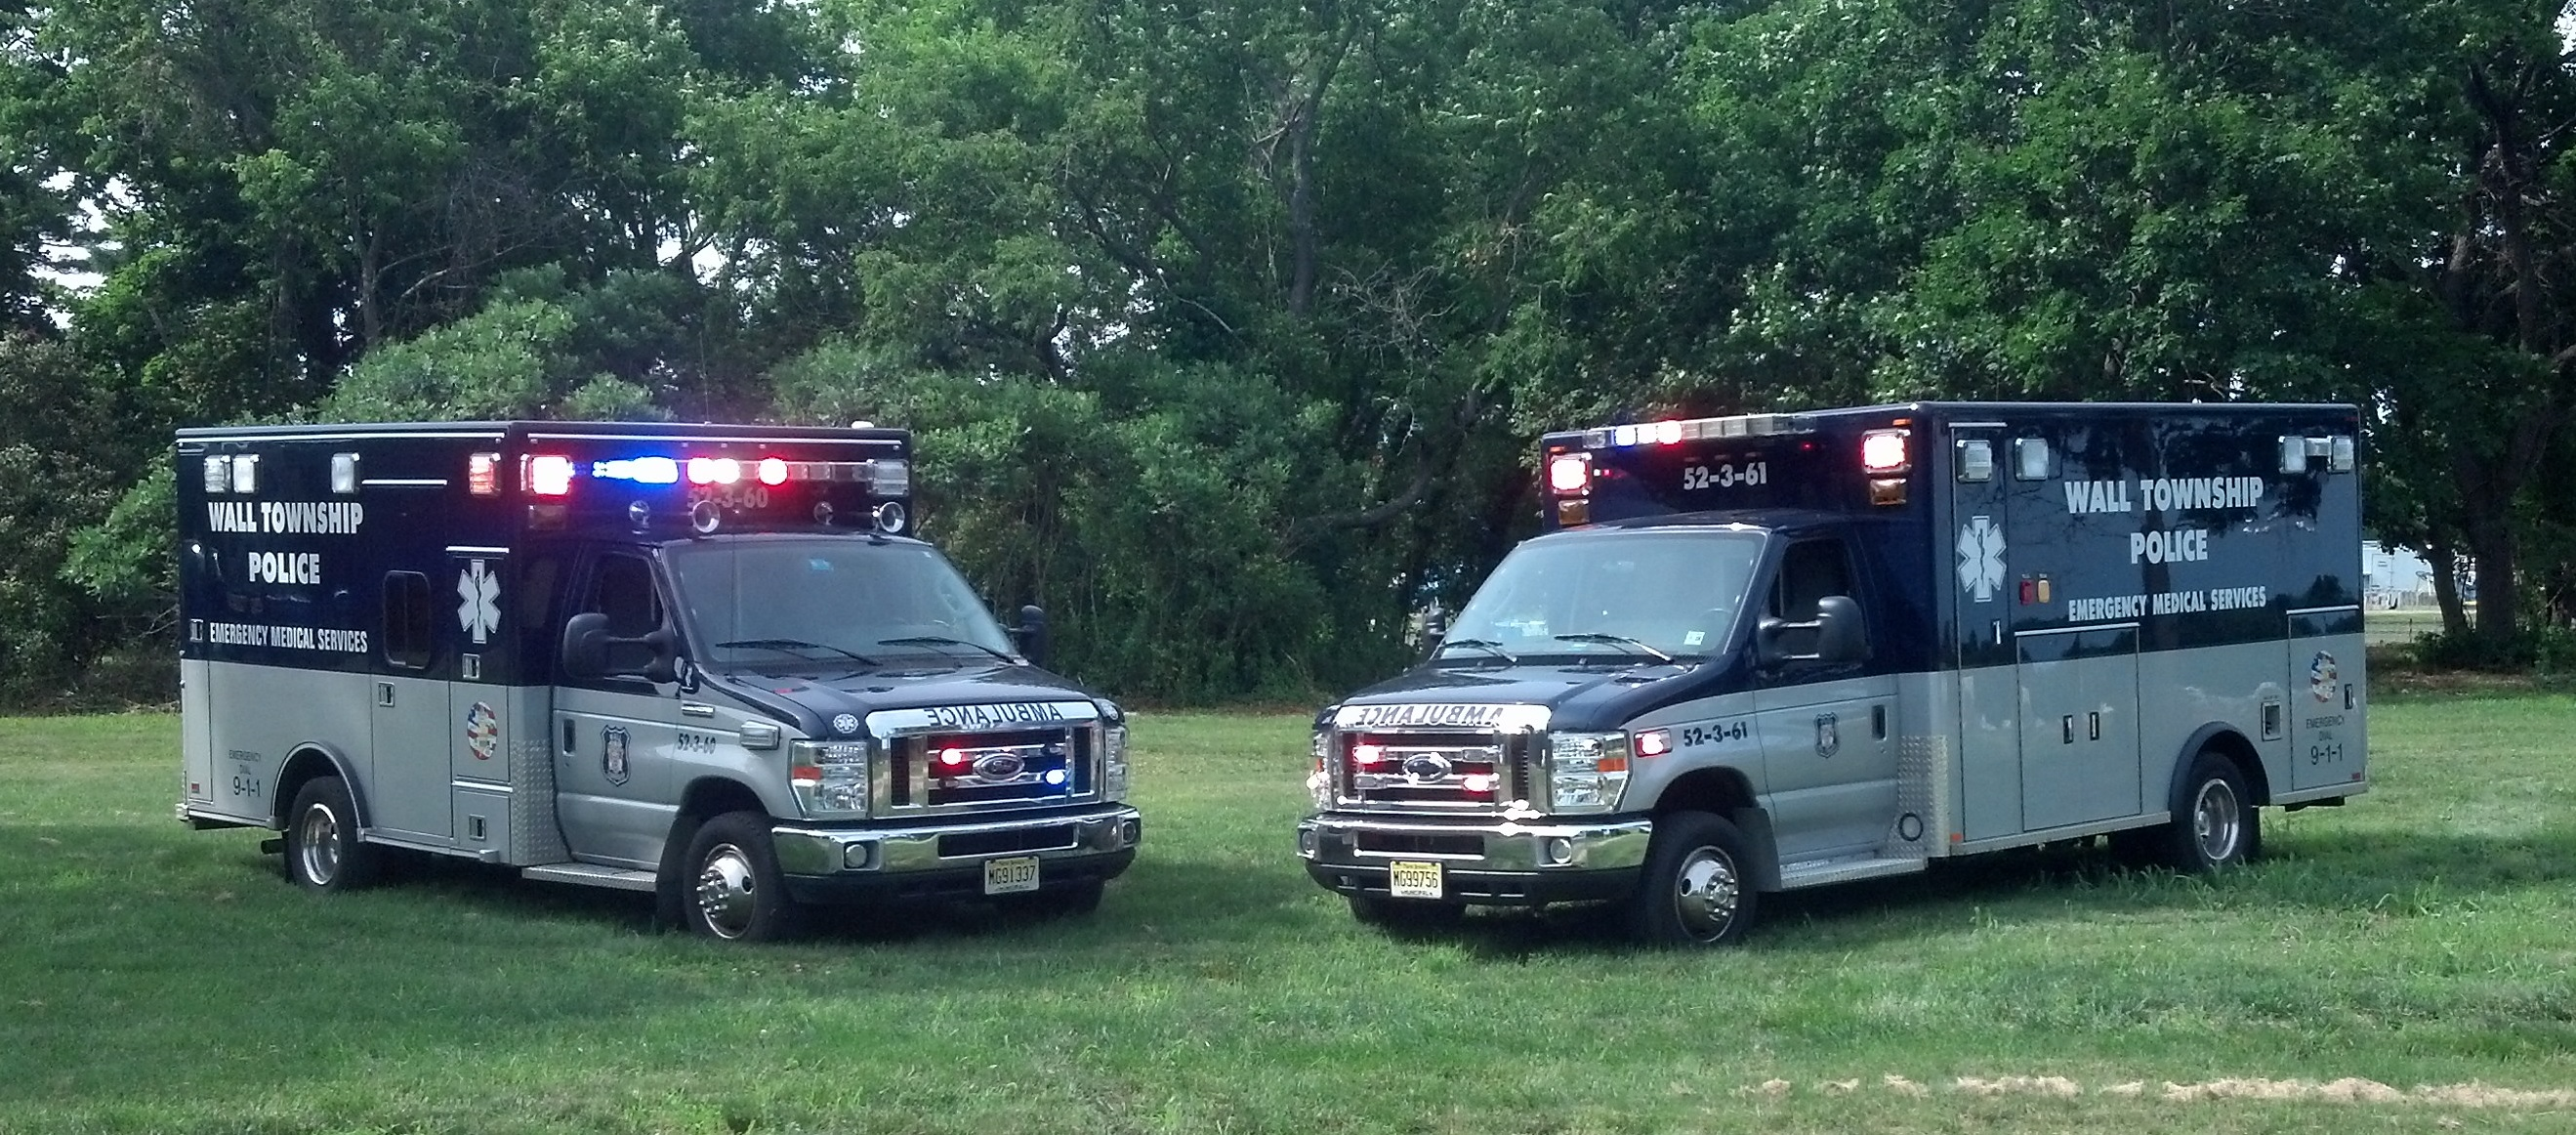 emergency medical services  u2013 wall township police